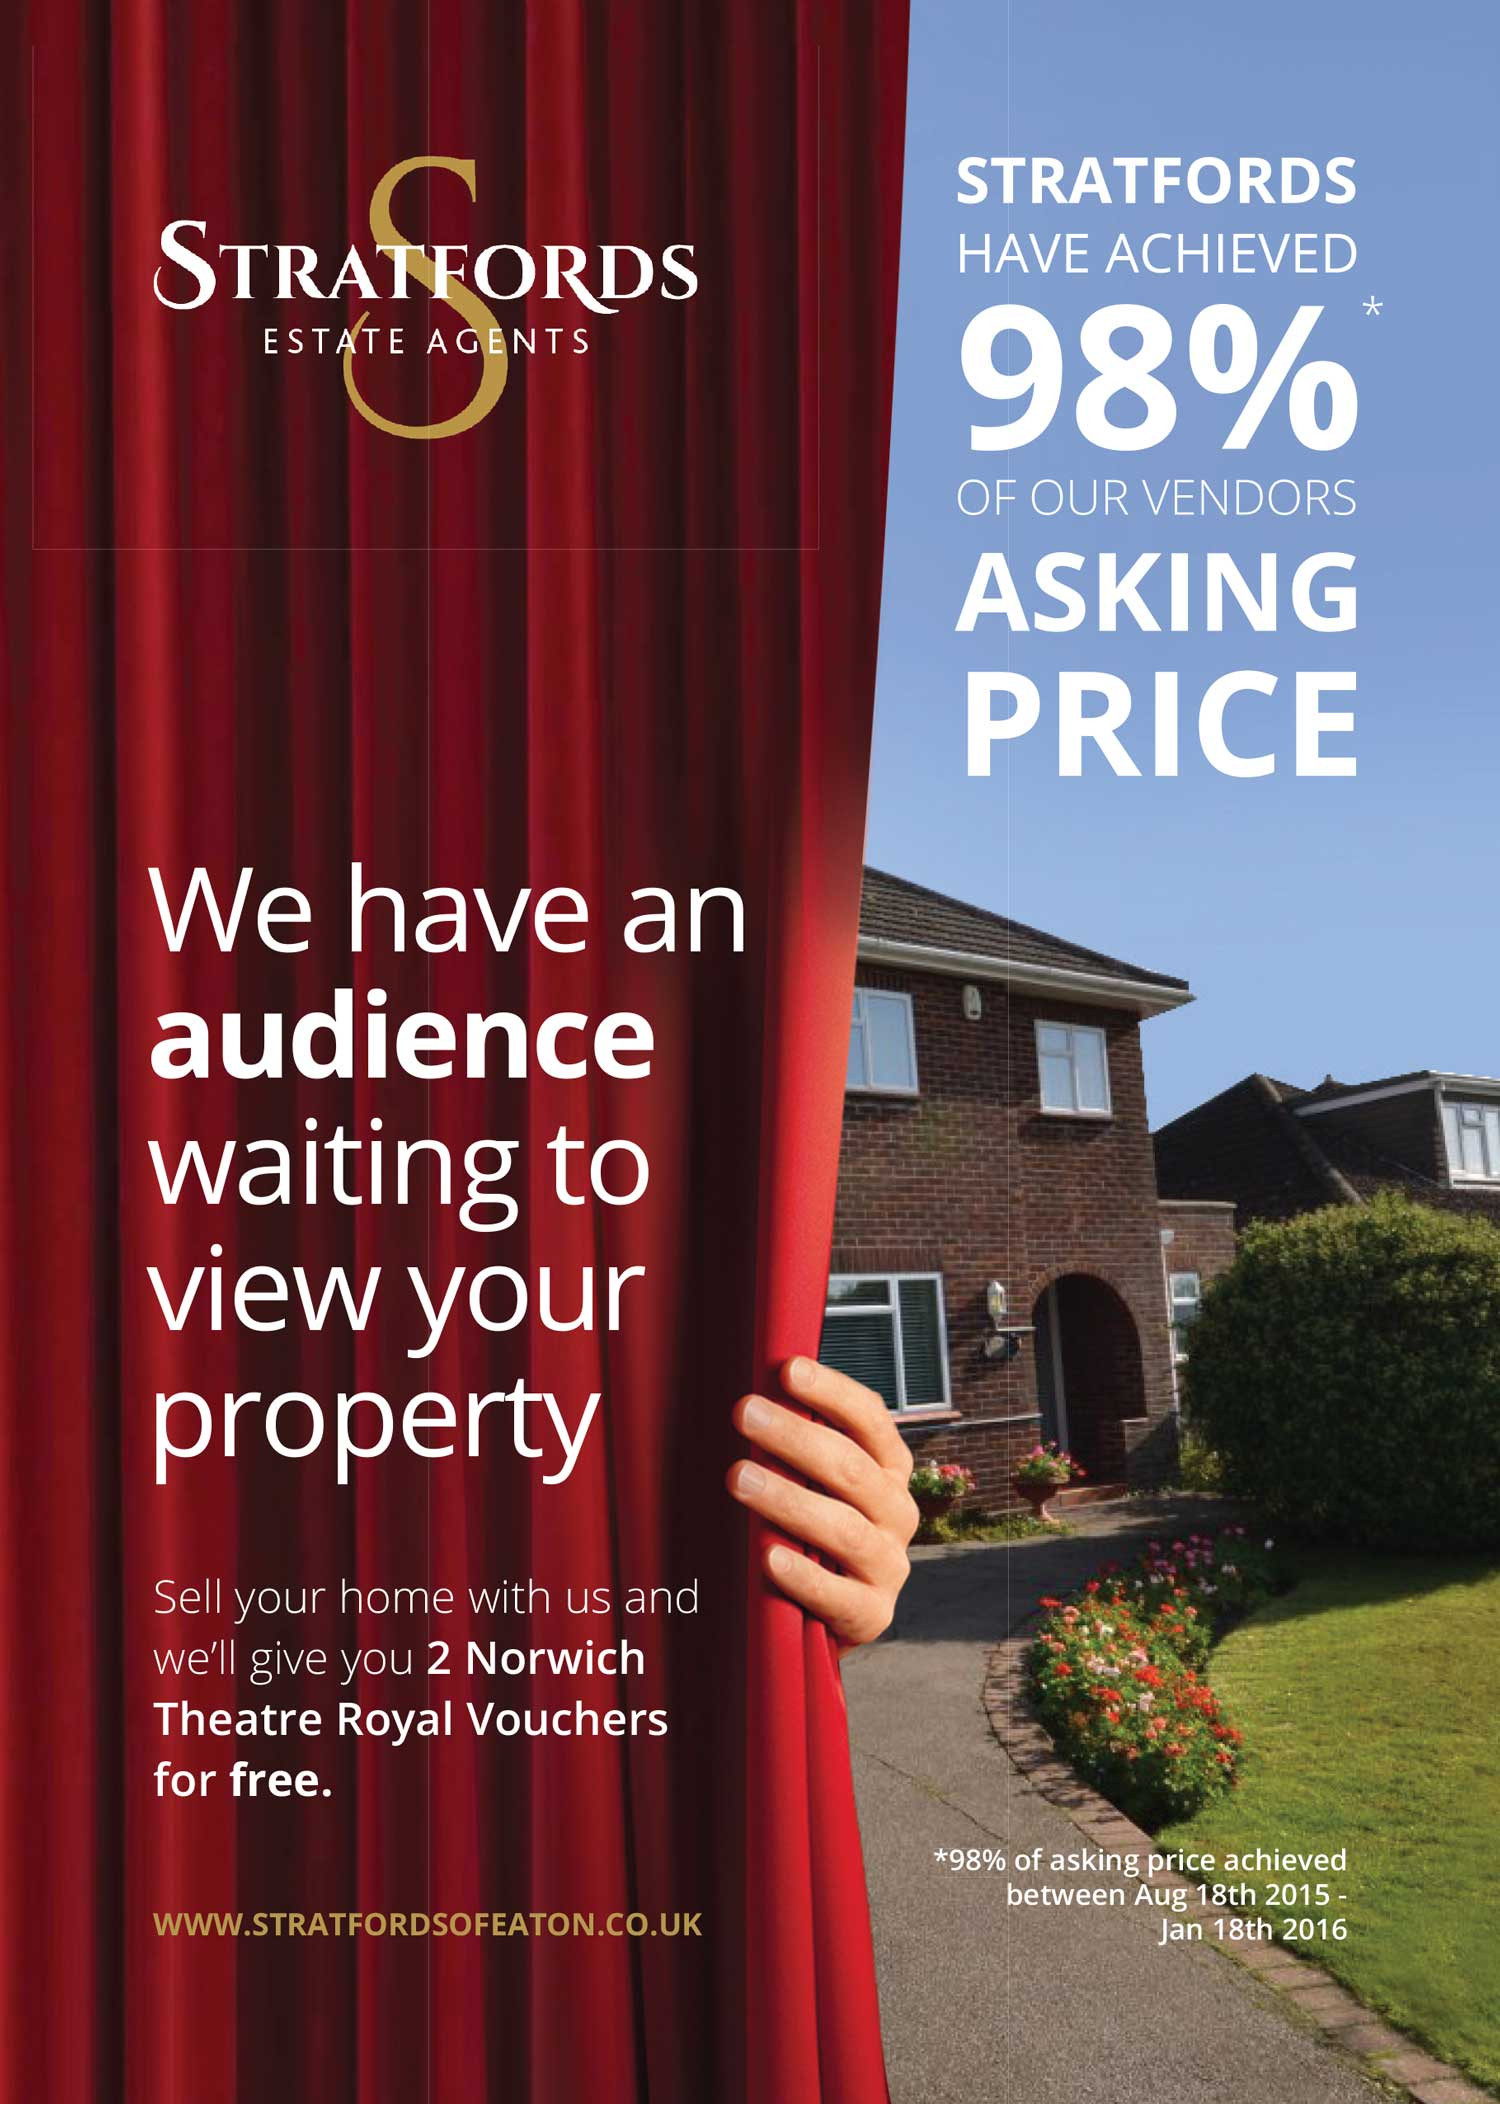 Magazine advert for Stratfords Estate Agents